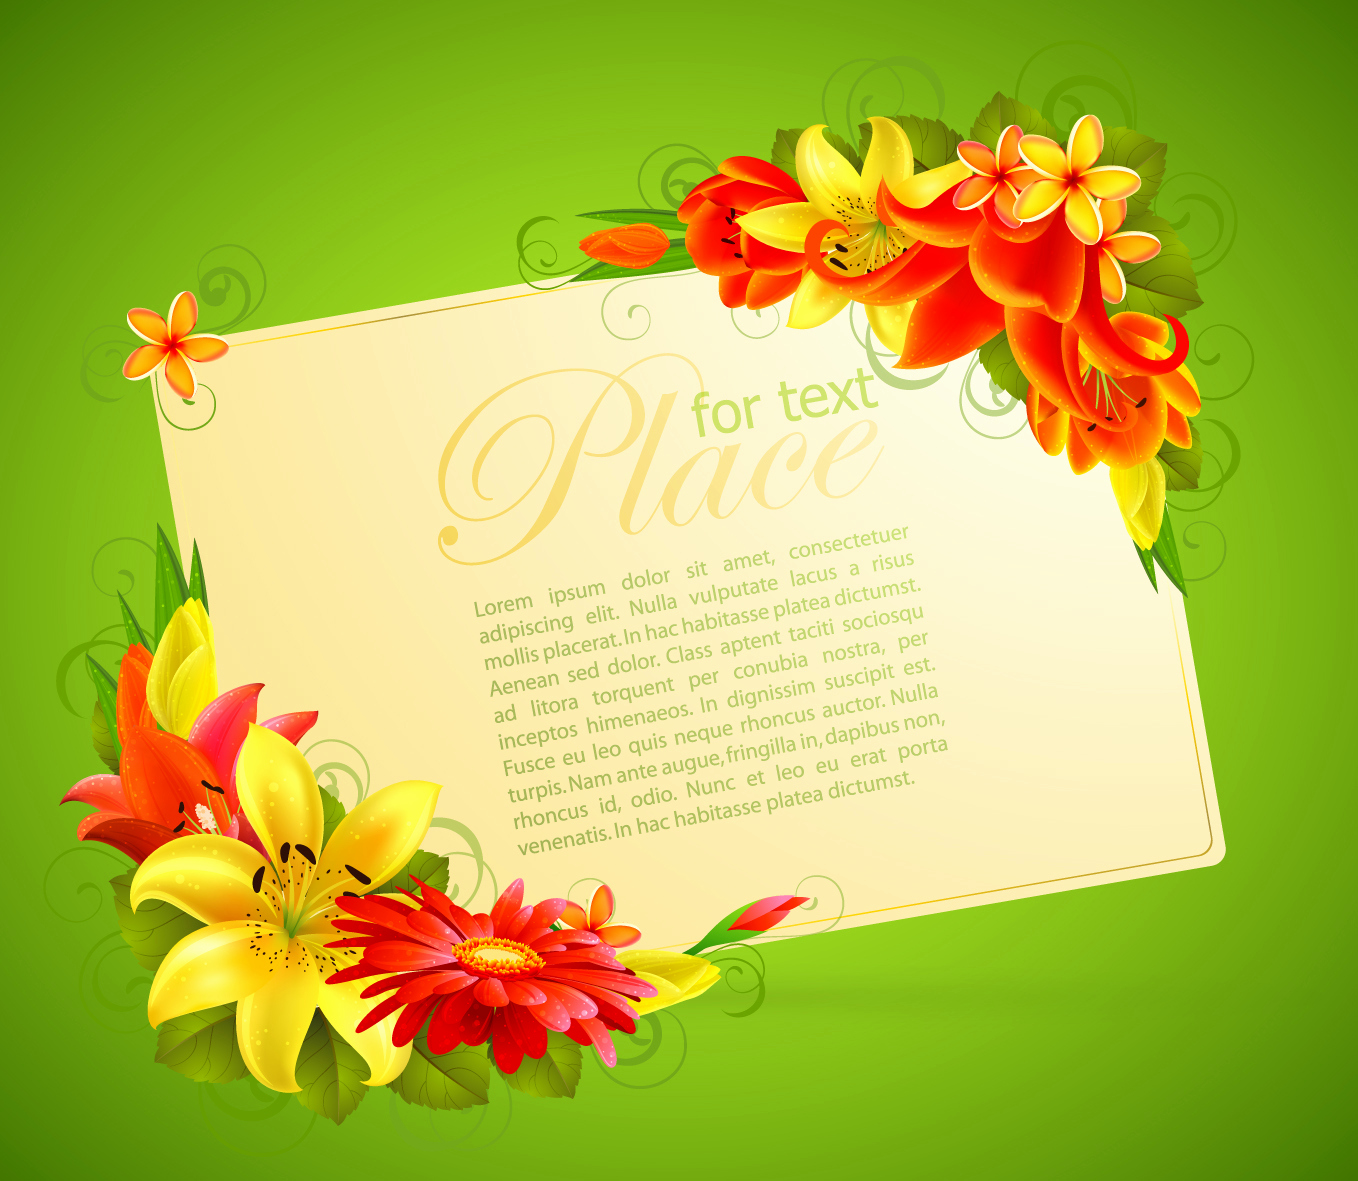 Free Greeting Card Templates Lovely 14 Greeting Card Templates Excel Pdf formats